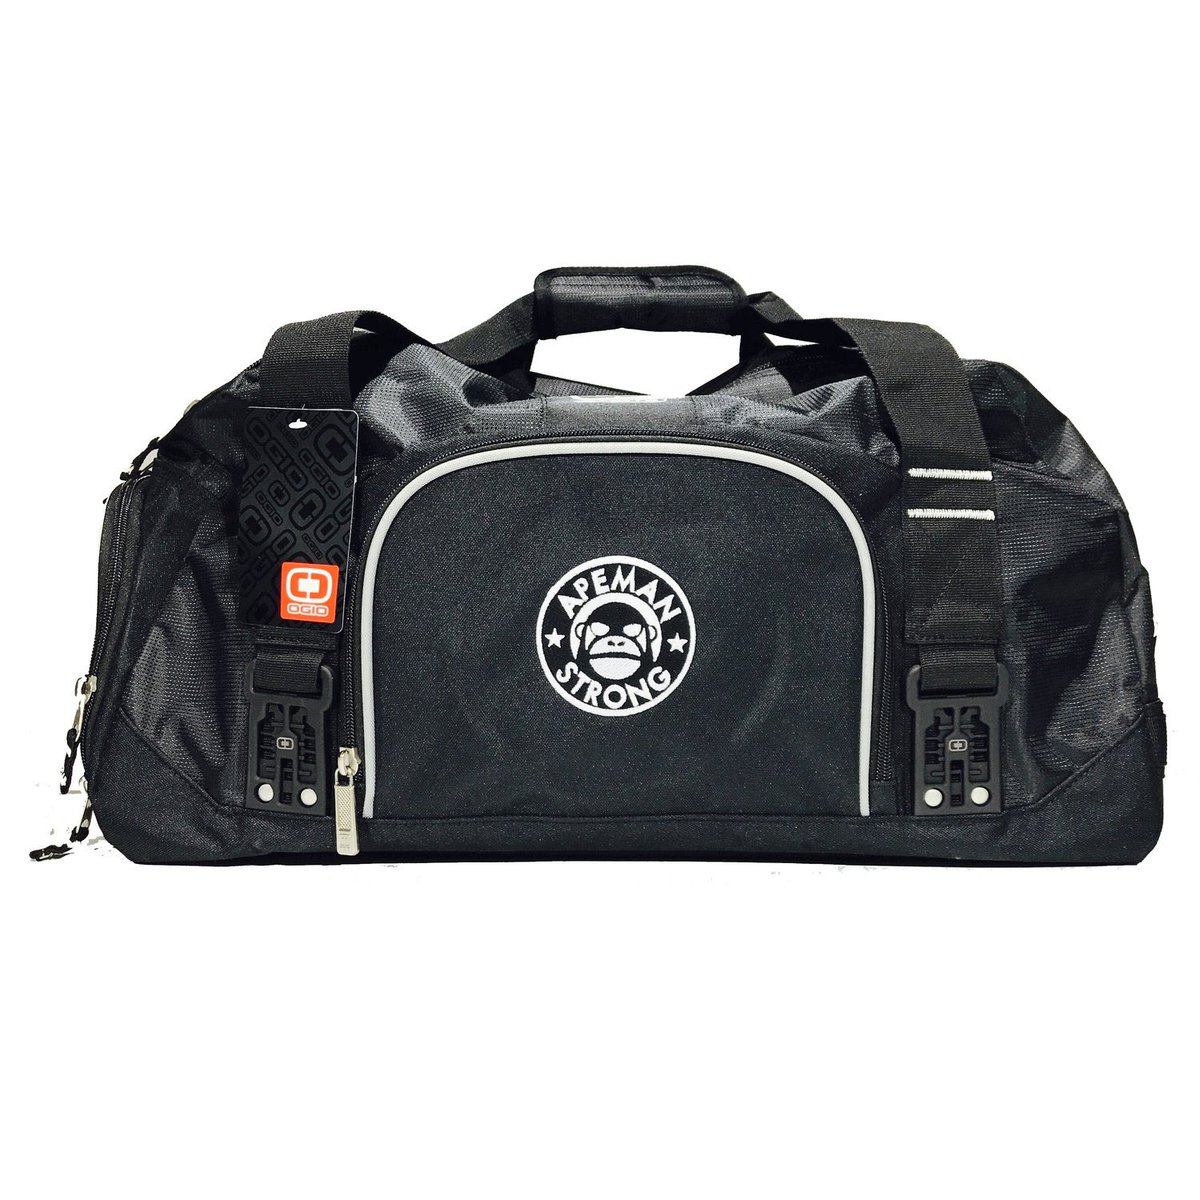 Gym bags are fully stocked. apemanstrong.com/bags/